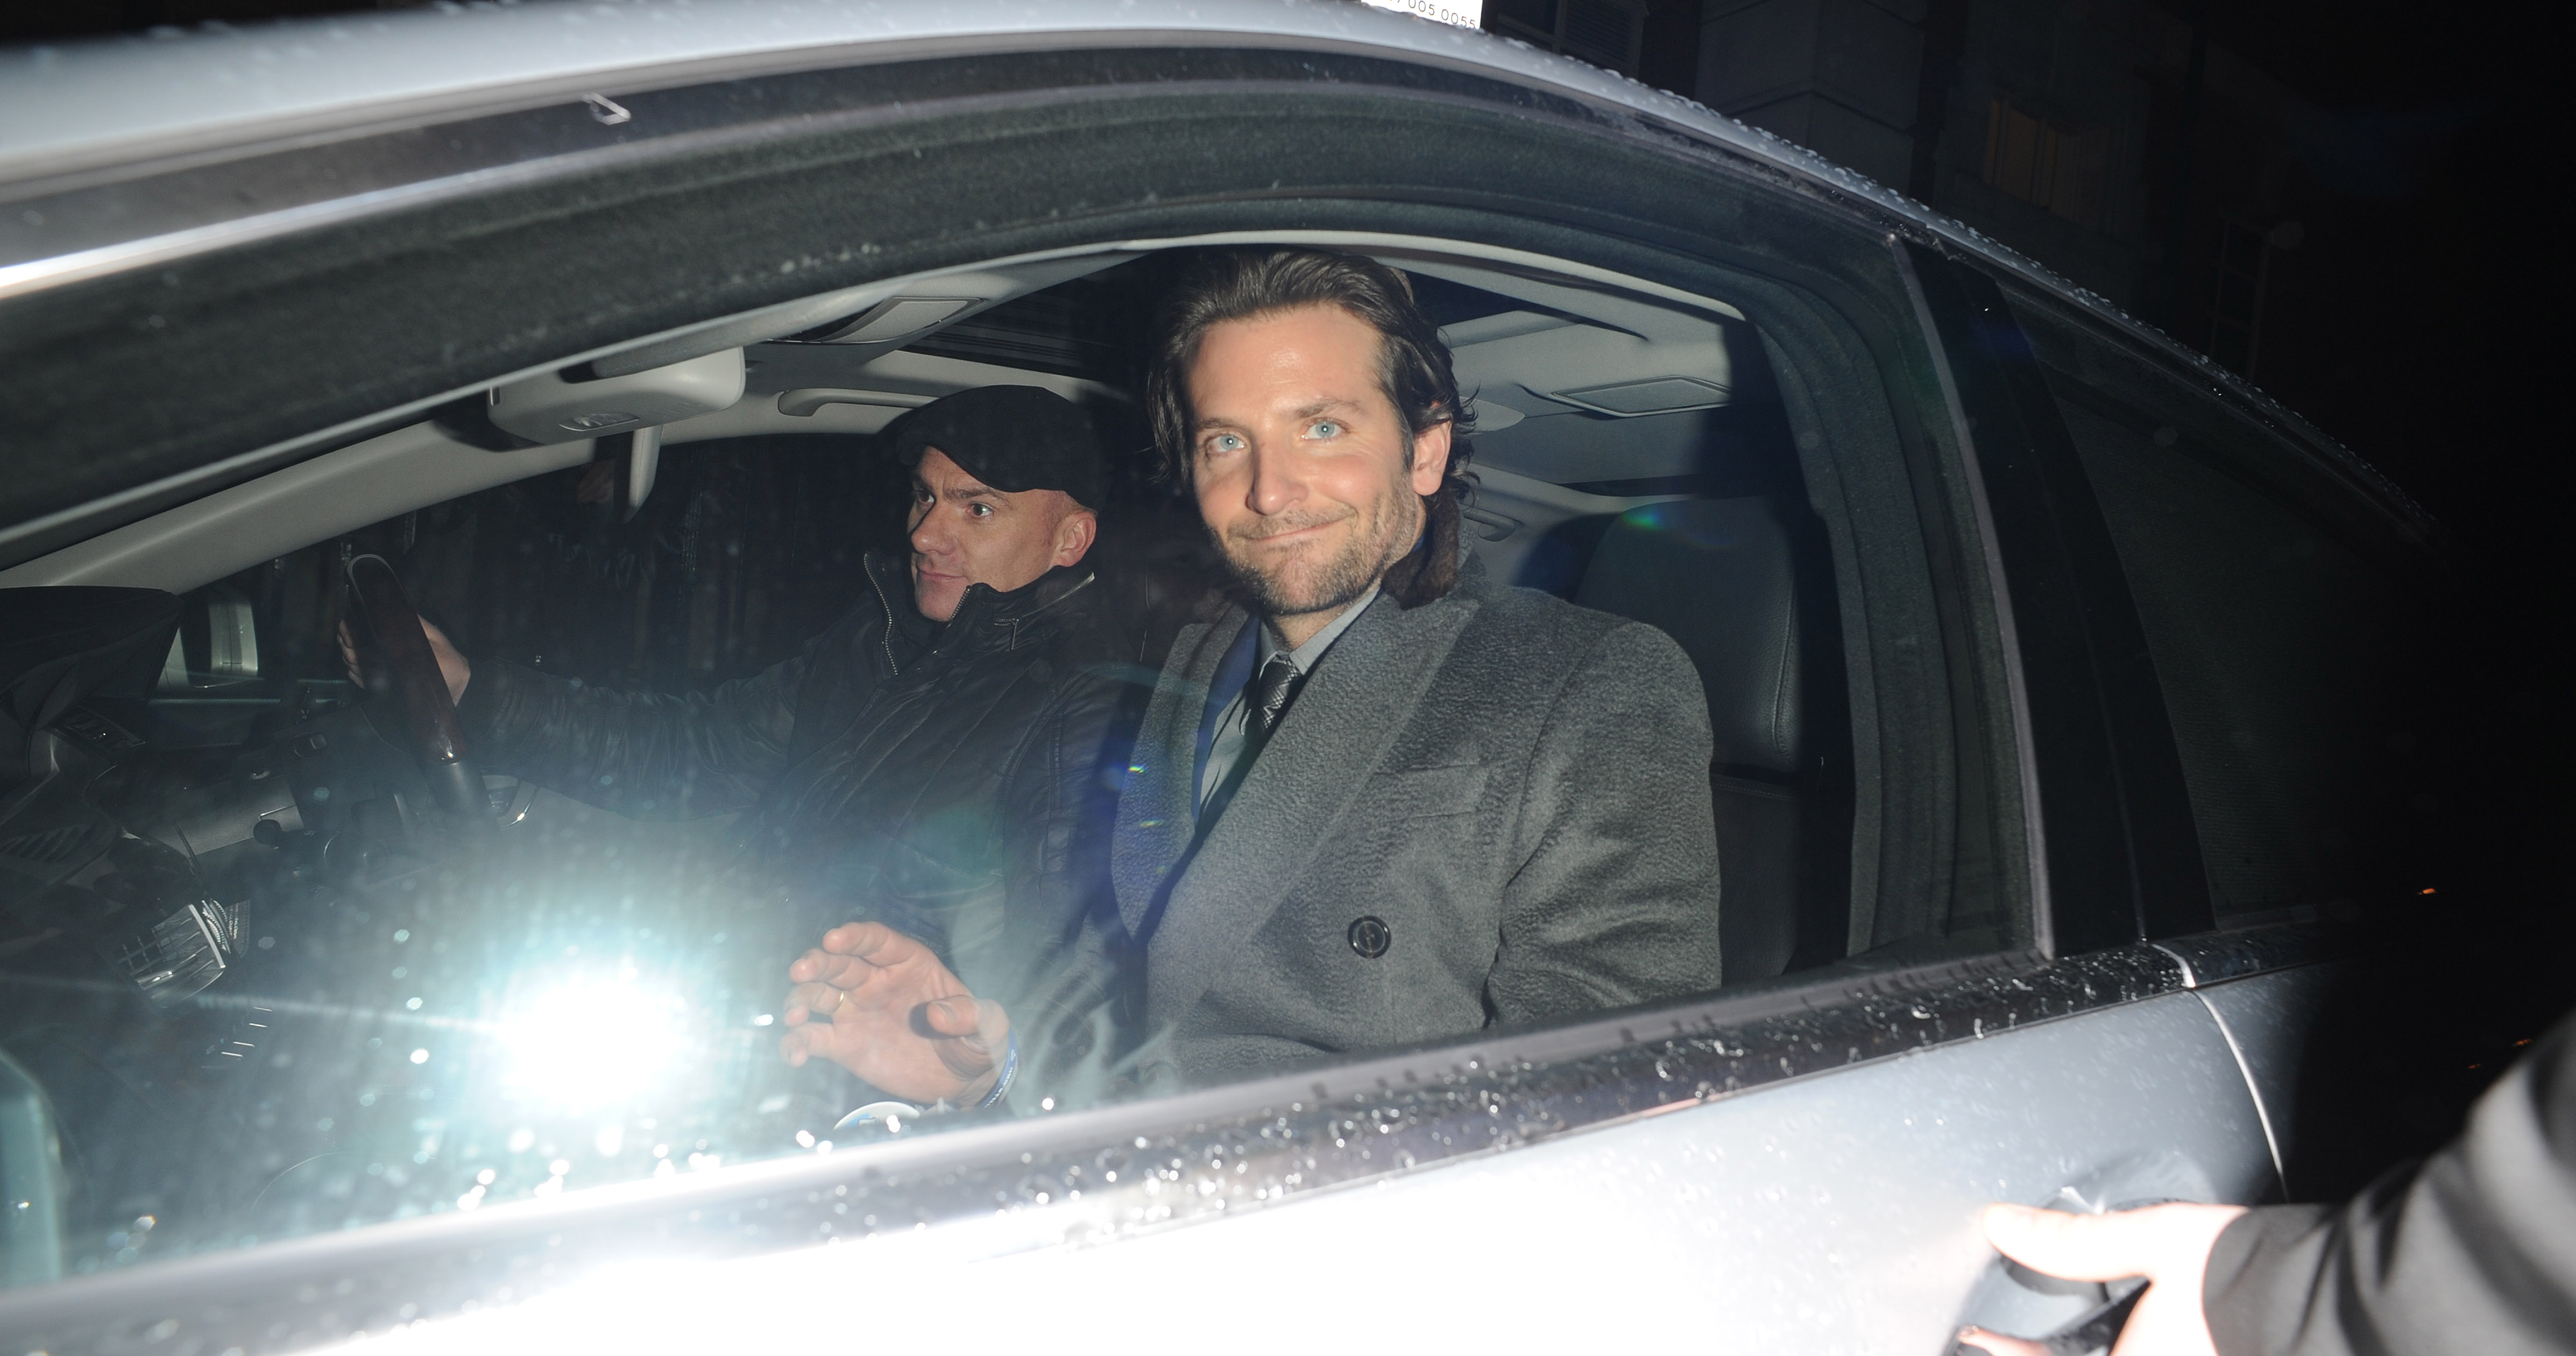 Bradley Cooper hopped into the awaiting car.